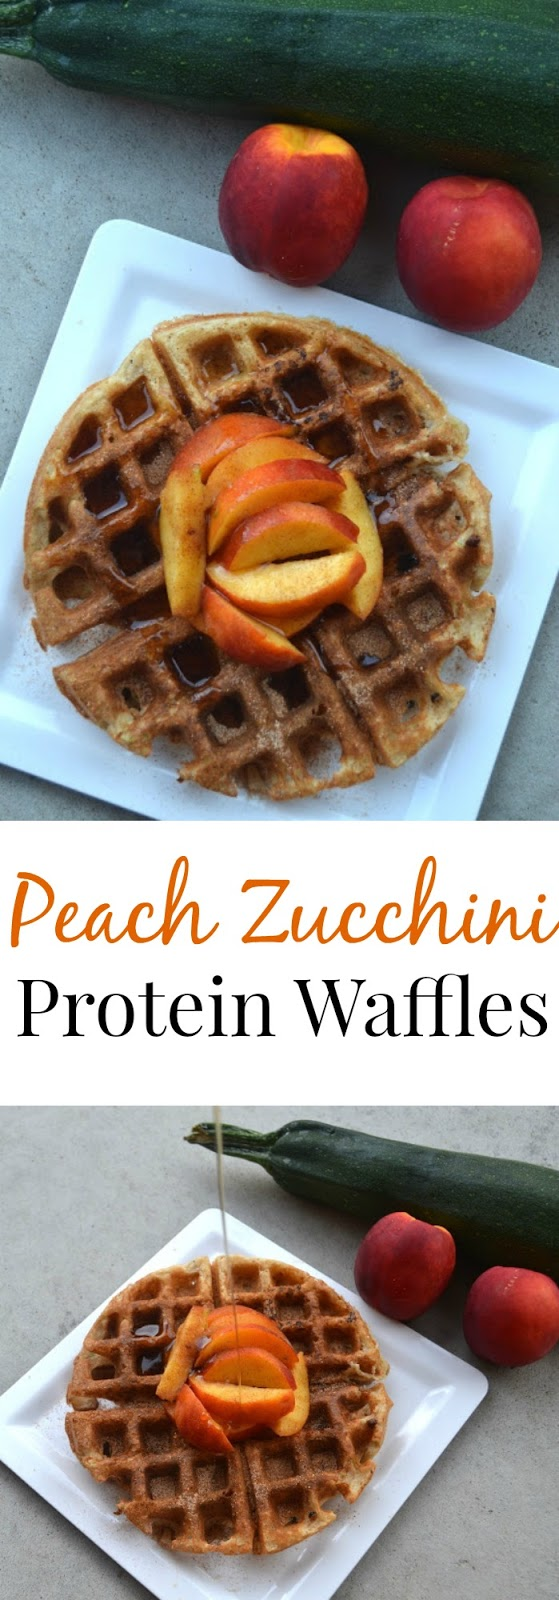 These Peach Zucchini Protein Waffles are easy to make and are packed full of produce for a healthy and satisfying breakfast! www.nutritionistreviews.com